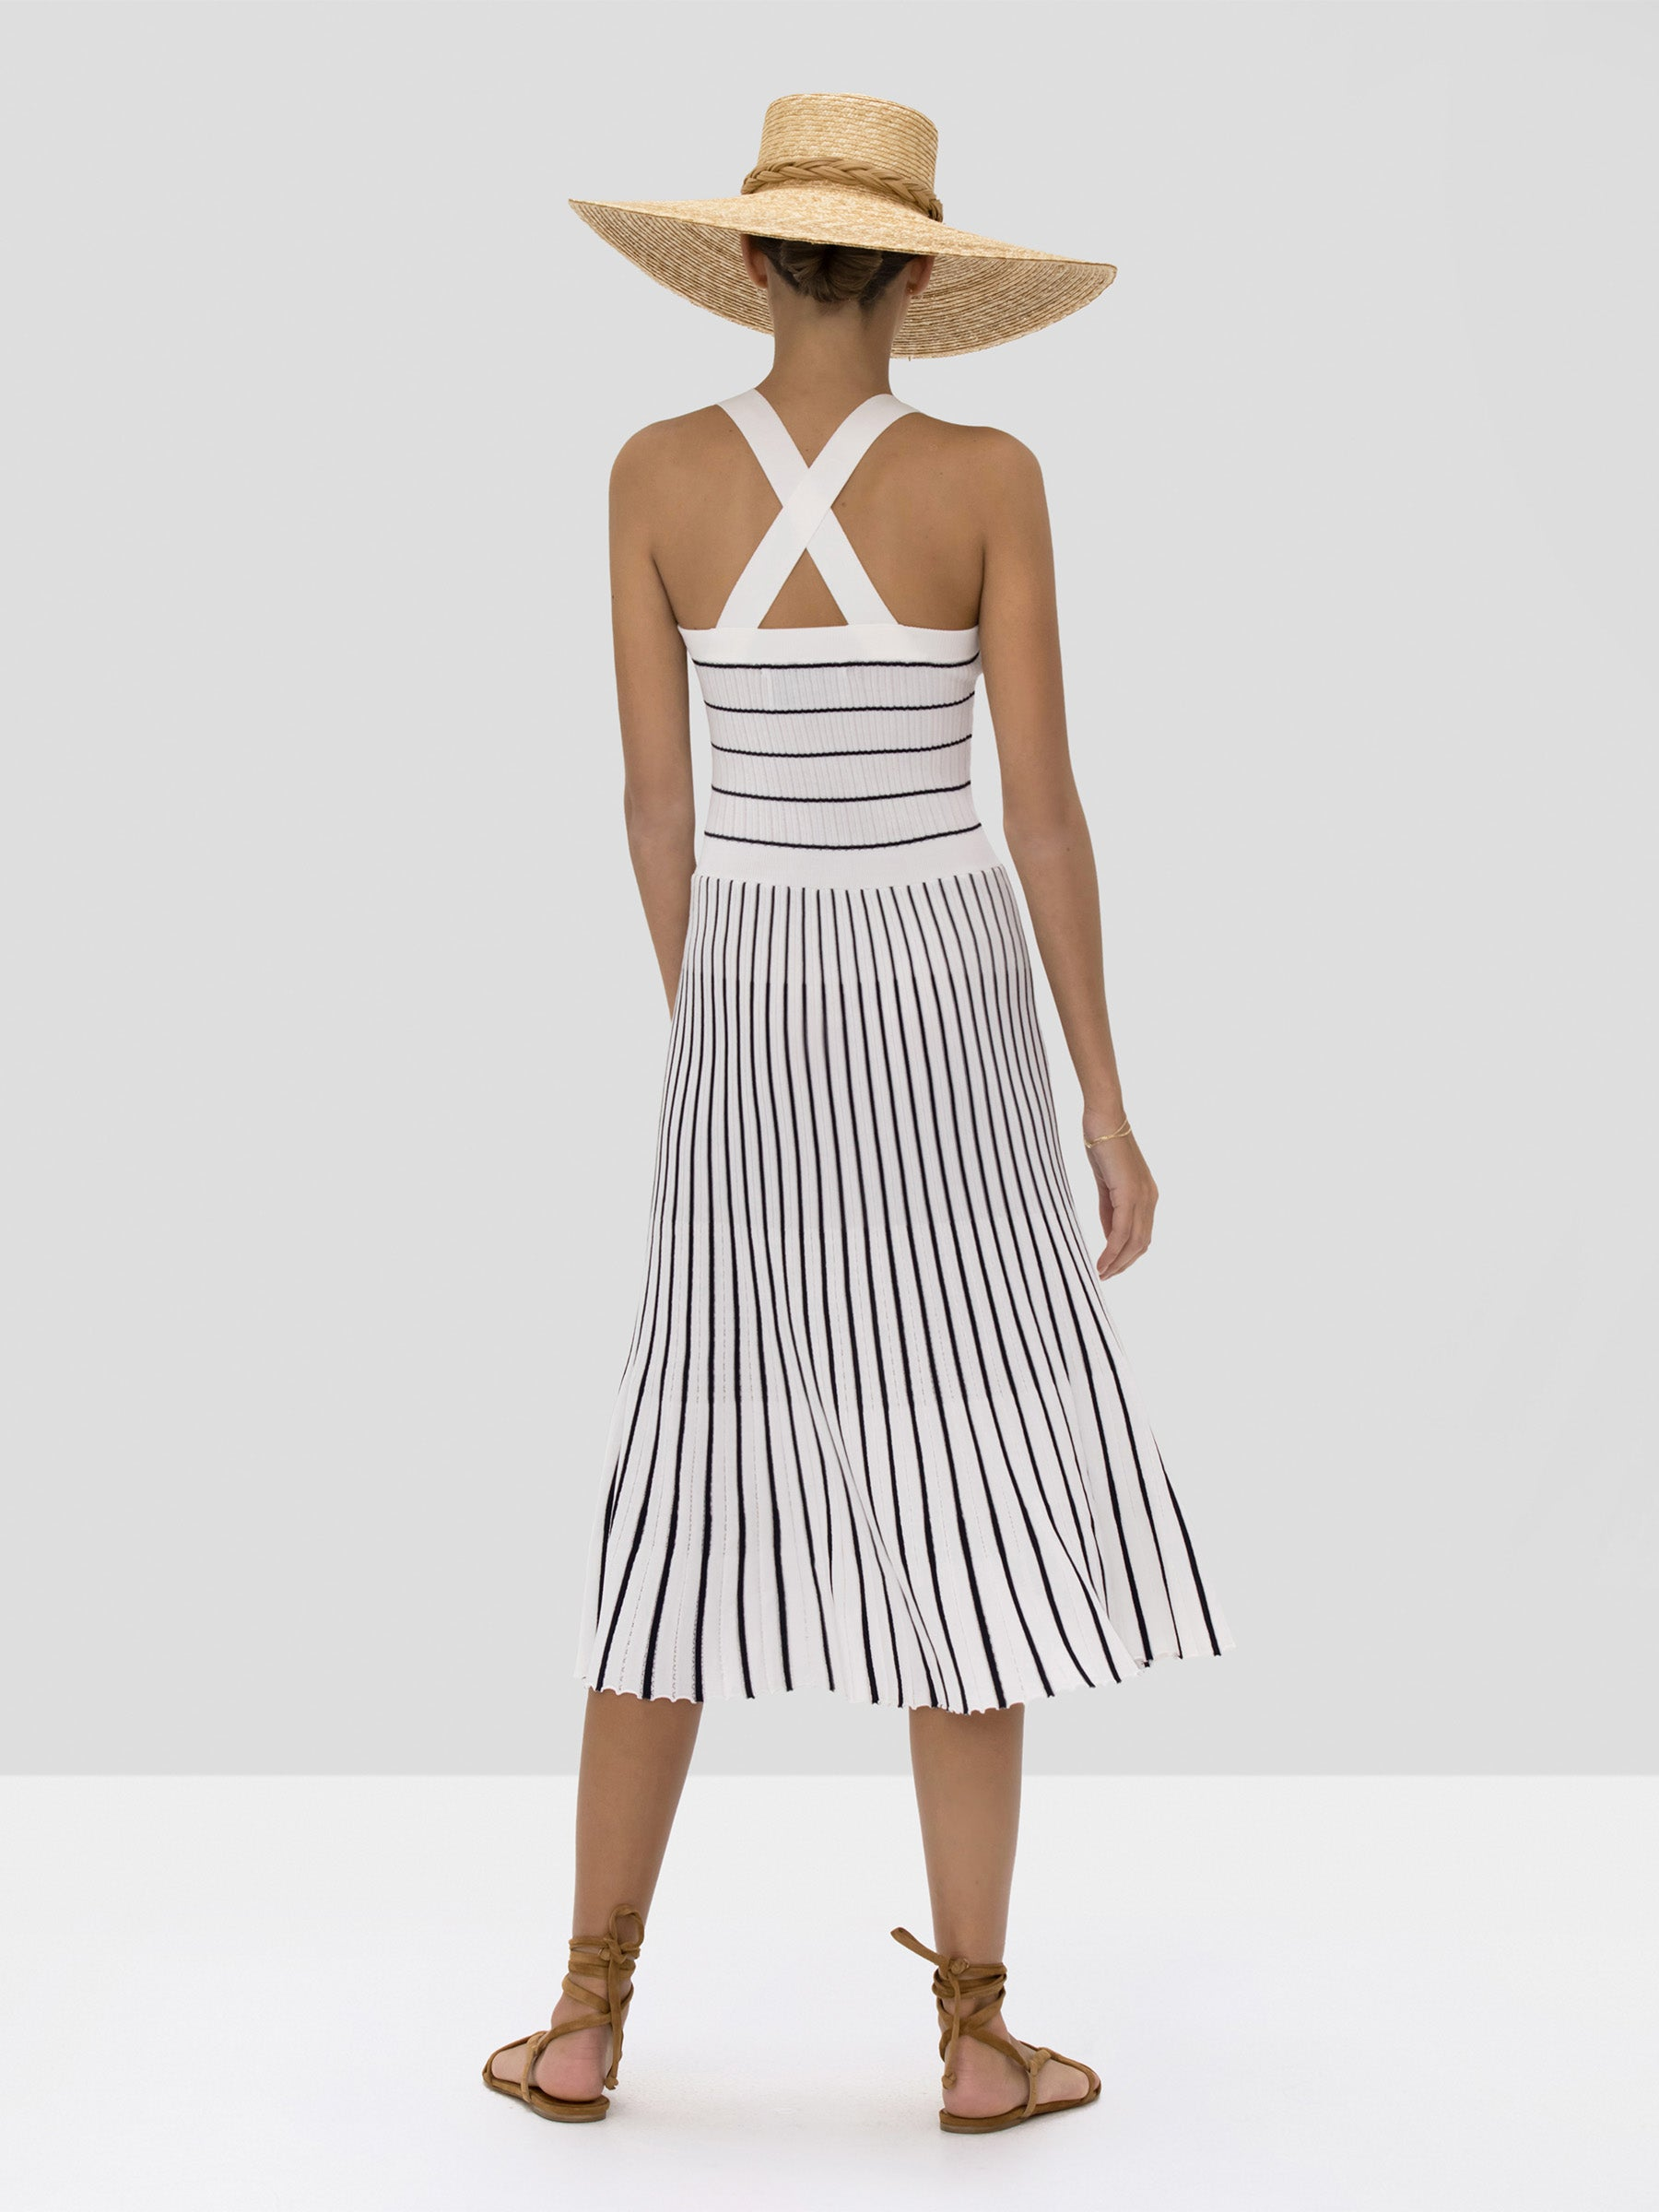 The Bess Dress in Navy White Stripes from the Spring Summer 2020 - Rear View